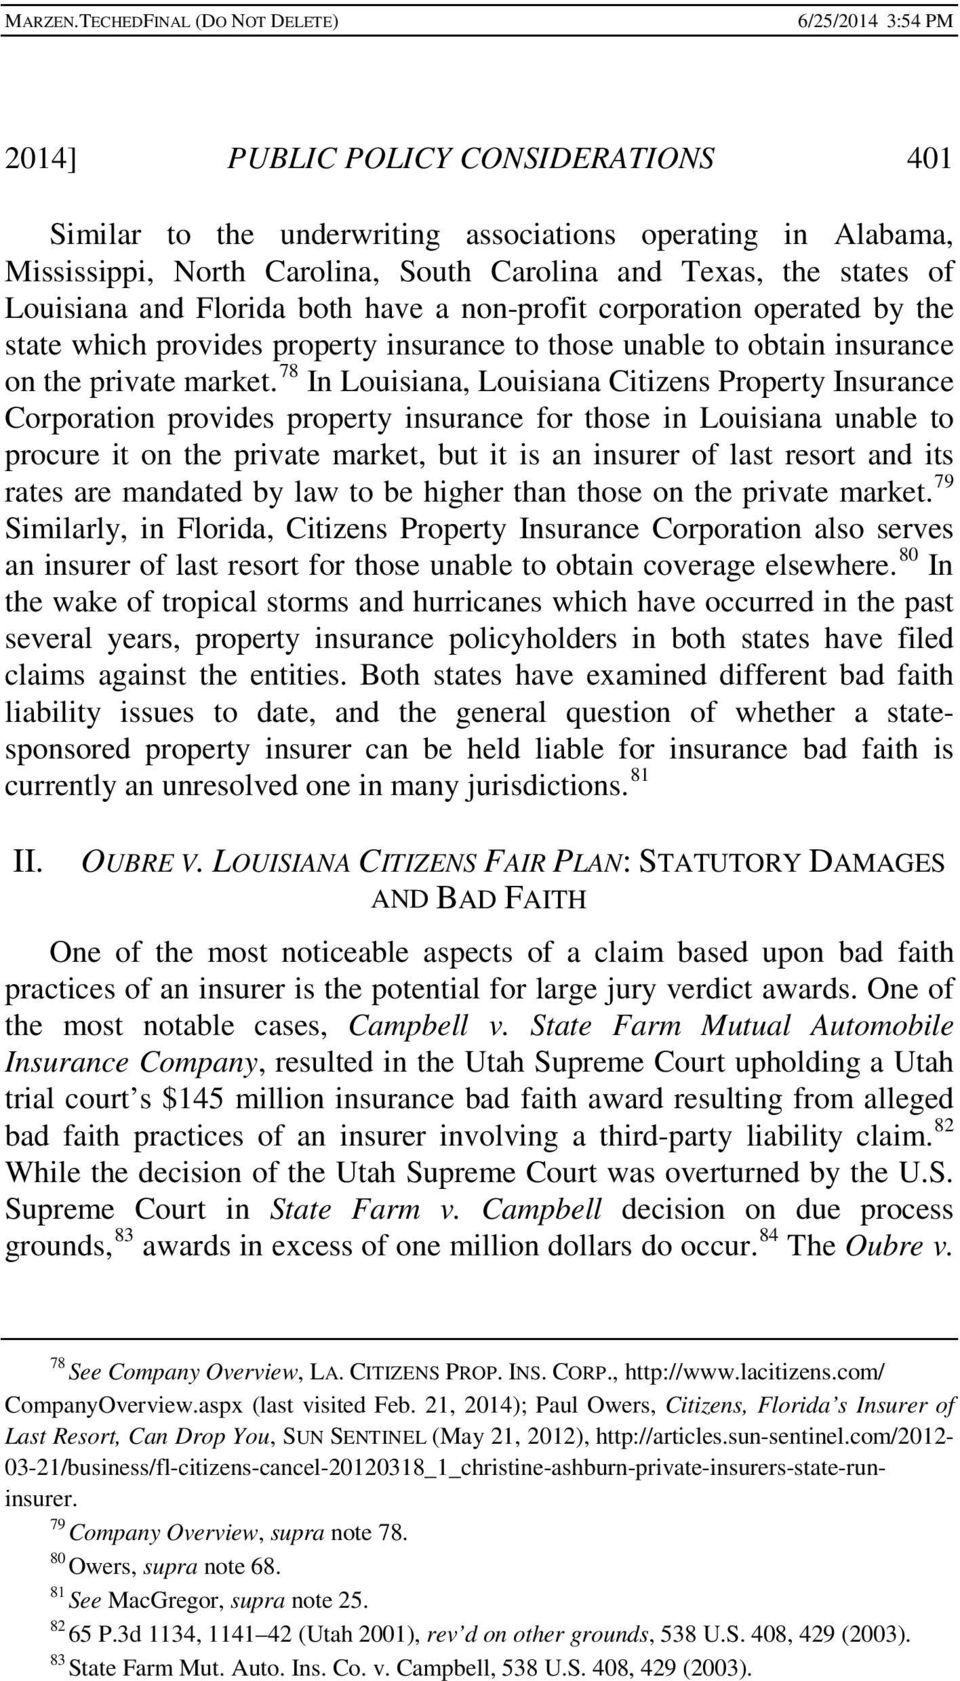 78 In Louisiana, Louisiana Citizens Property Insurance Corporation provides property insurance for those in Louisiana unable to procure it on the private market, but it is an insurer of last resort